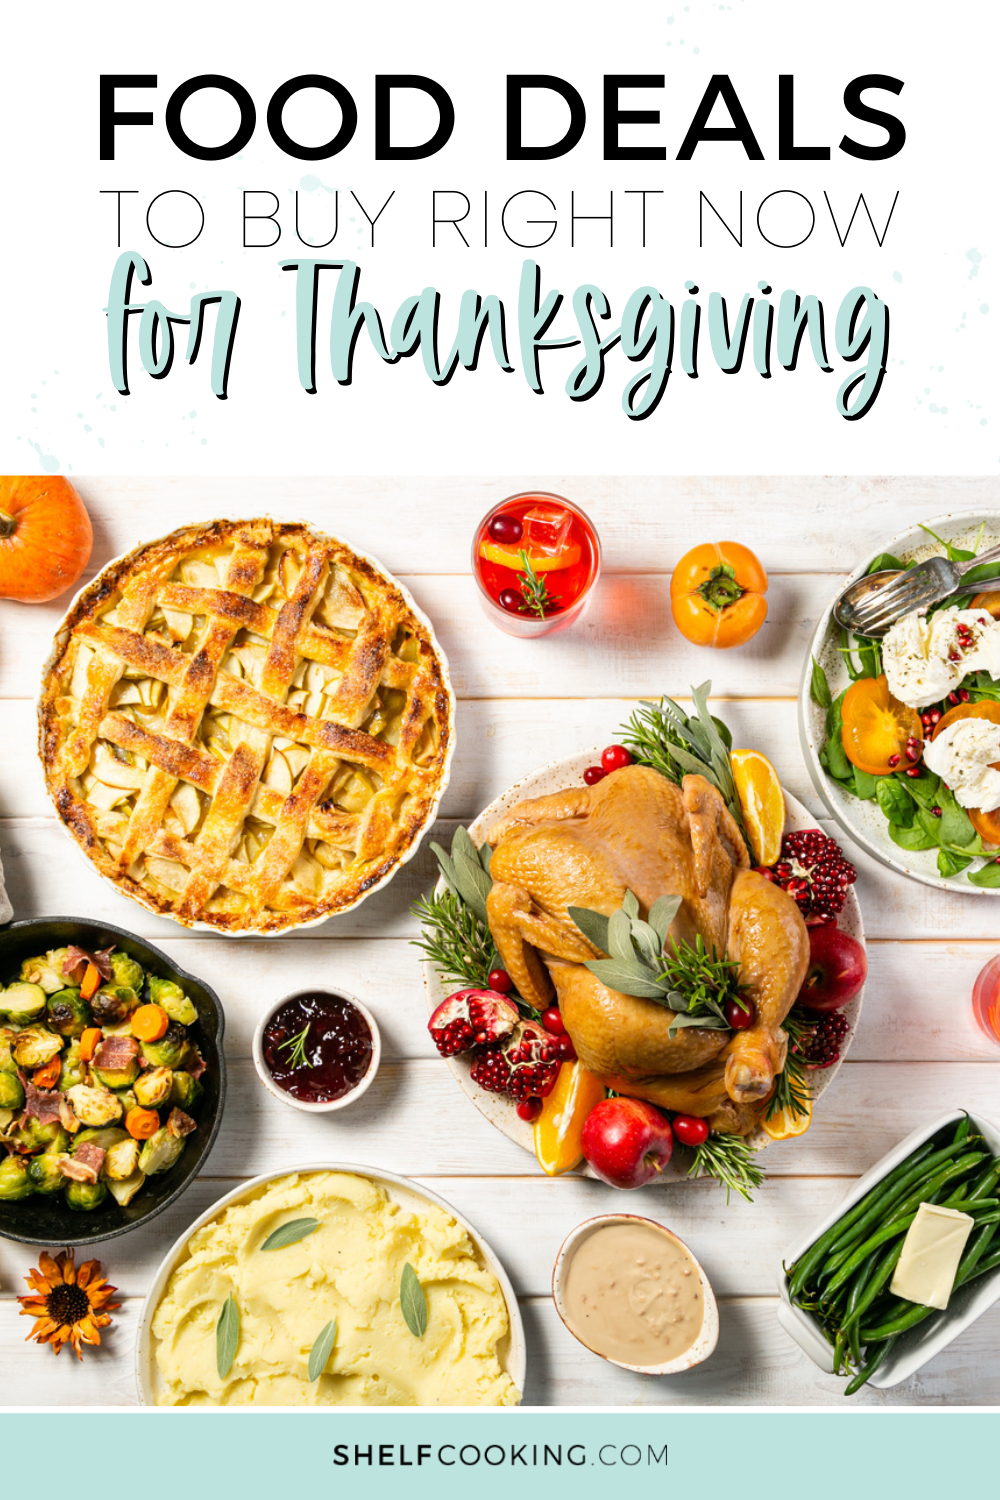 Thanksgiving Food Deals To Buy Right Now In 2020 Thanksgiving Recipes Meal Deal Food